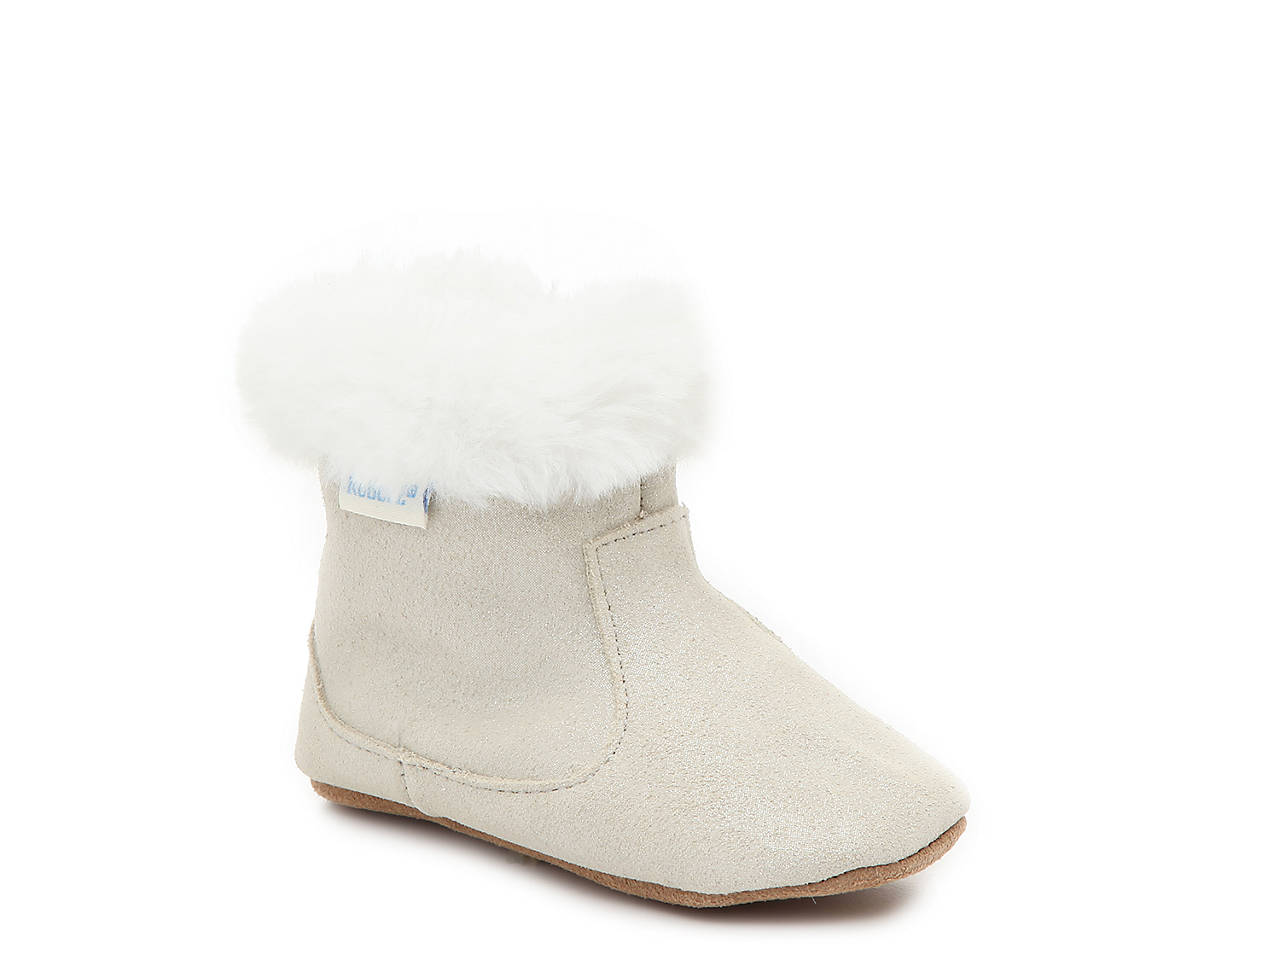 Robeez Thea Crib Boot Kids' Kids Shoes DSW  DSW